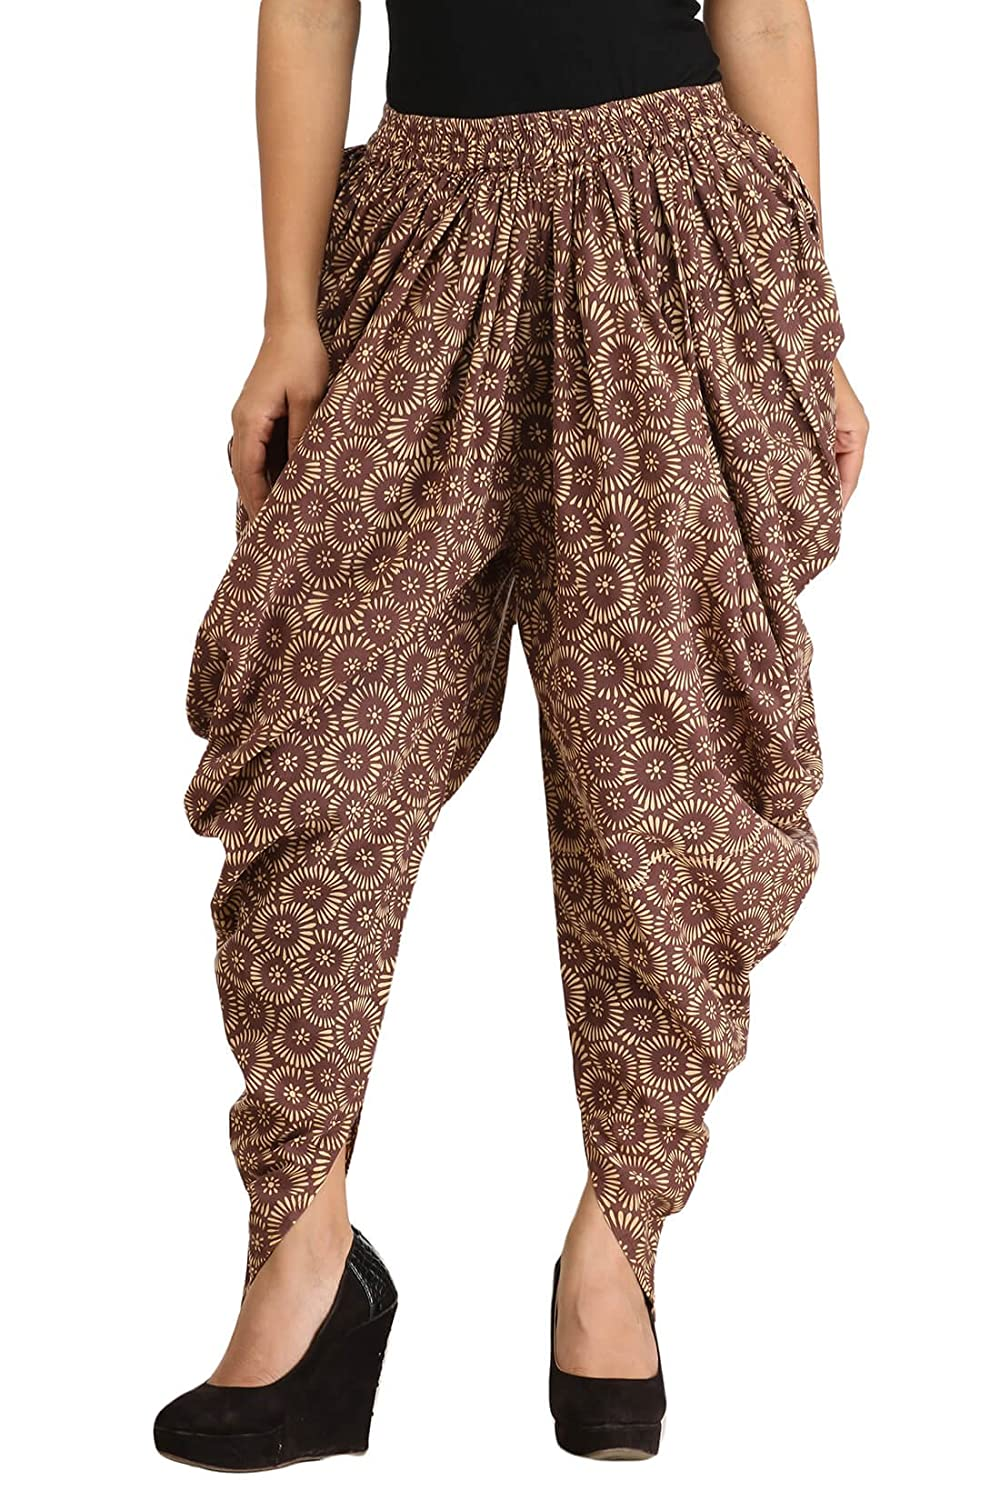 Awesome Dhoti Pants Womens With Innovative Styles U2013 Playzoa.com